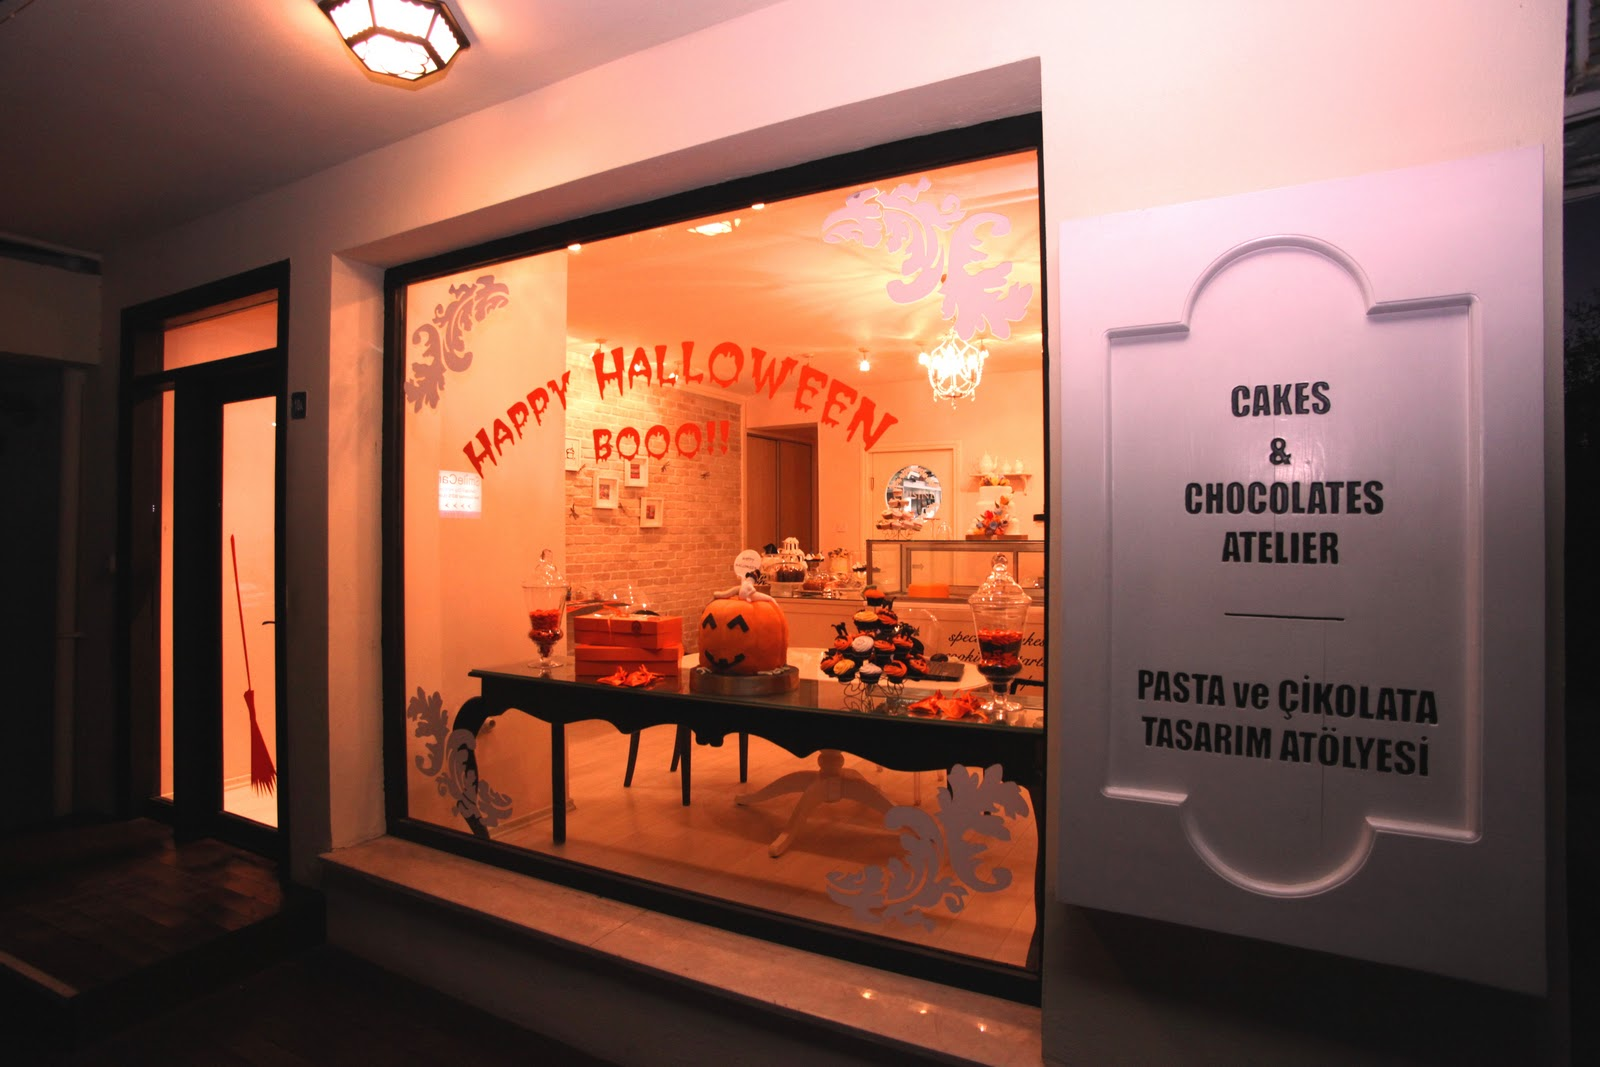 This cakes and chocolate atelier from Cyprus made something classy and clean for the Halloween window display with sweets in shape of pumpkins and muffins with little chocolate cats on top.